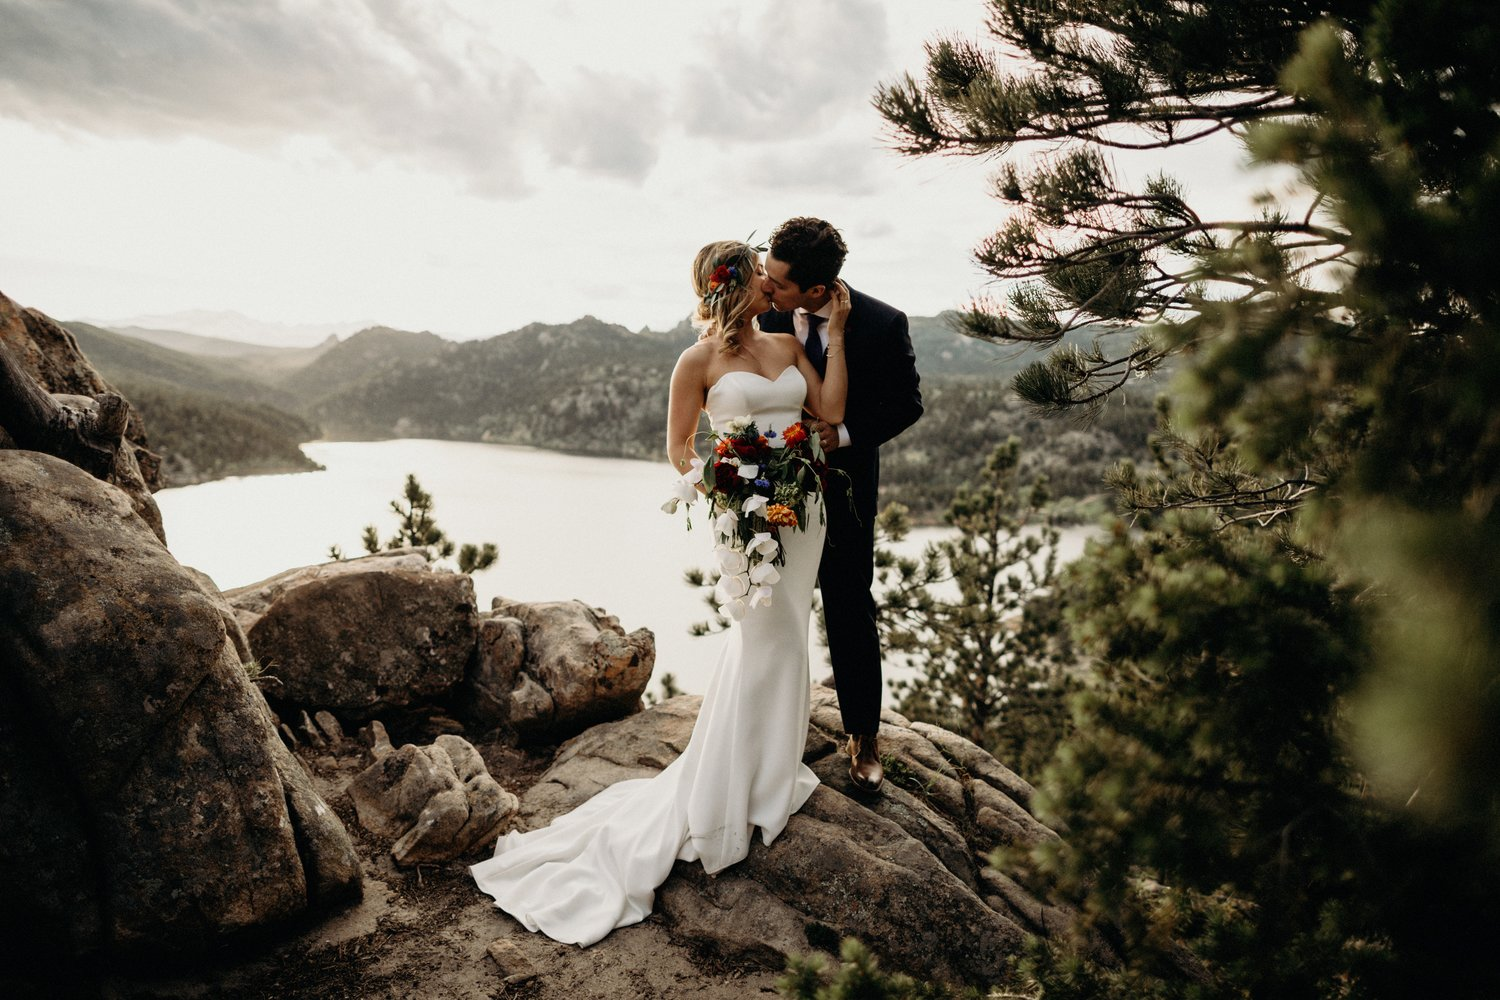 Adventure weddings and elopements colorado wedding productions colorado destination wedding elopement elope rocky mountain national park adventure wedding back packing wedding hiking photography photographer videography junglespirit Image collections